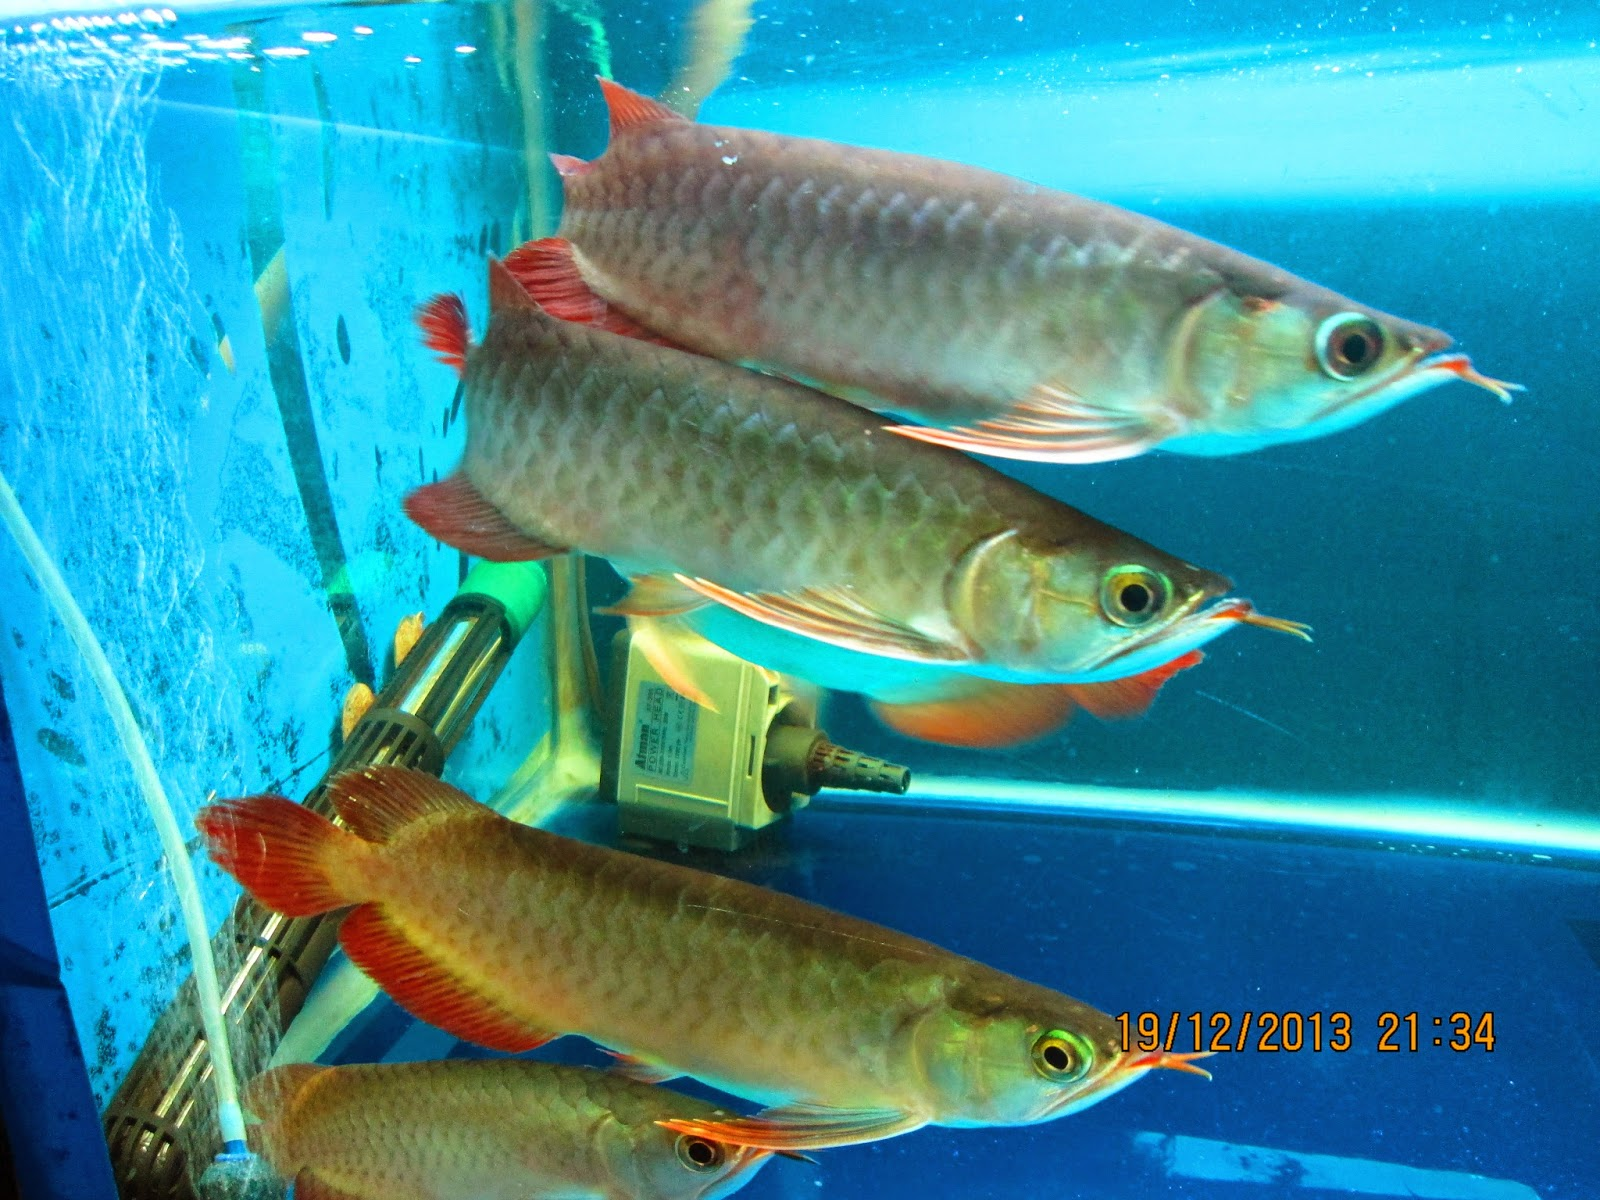 Arowana Keeping & Breeding in Aquarium: June 2014